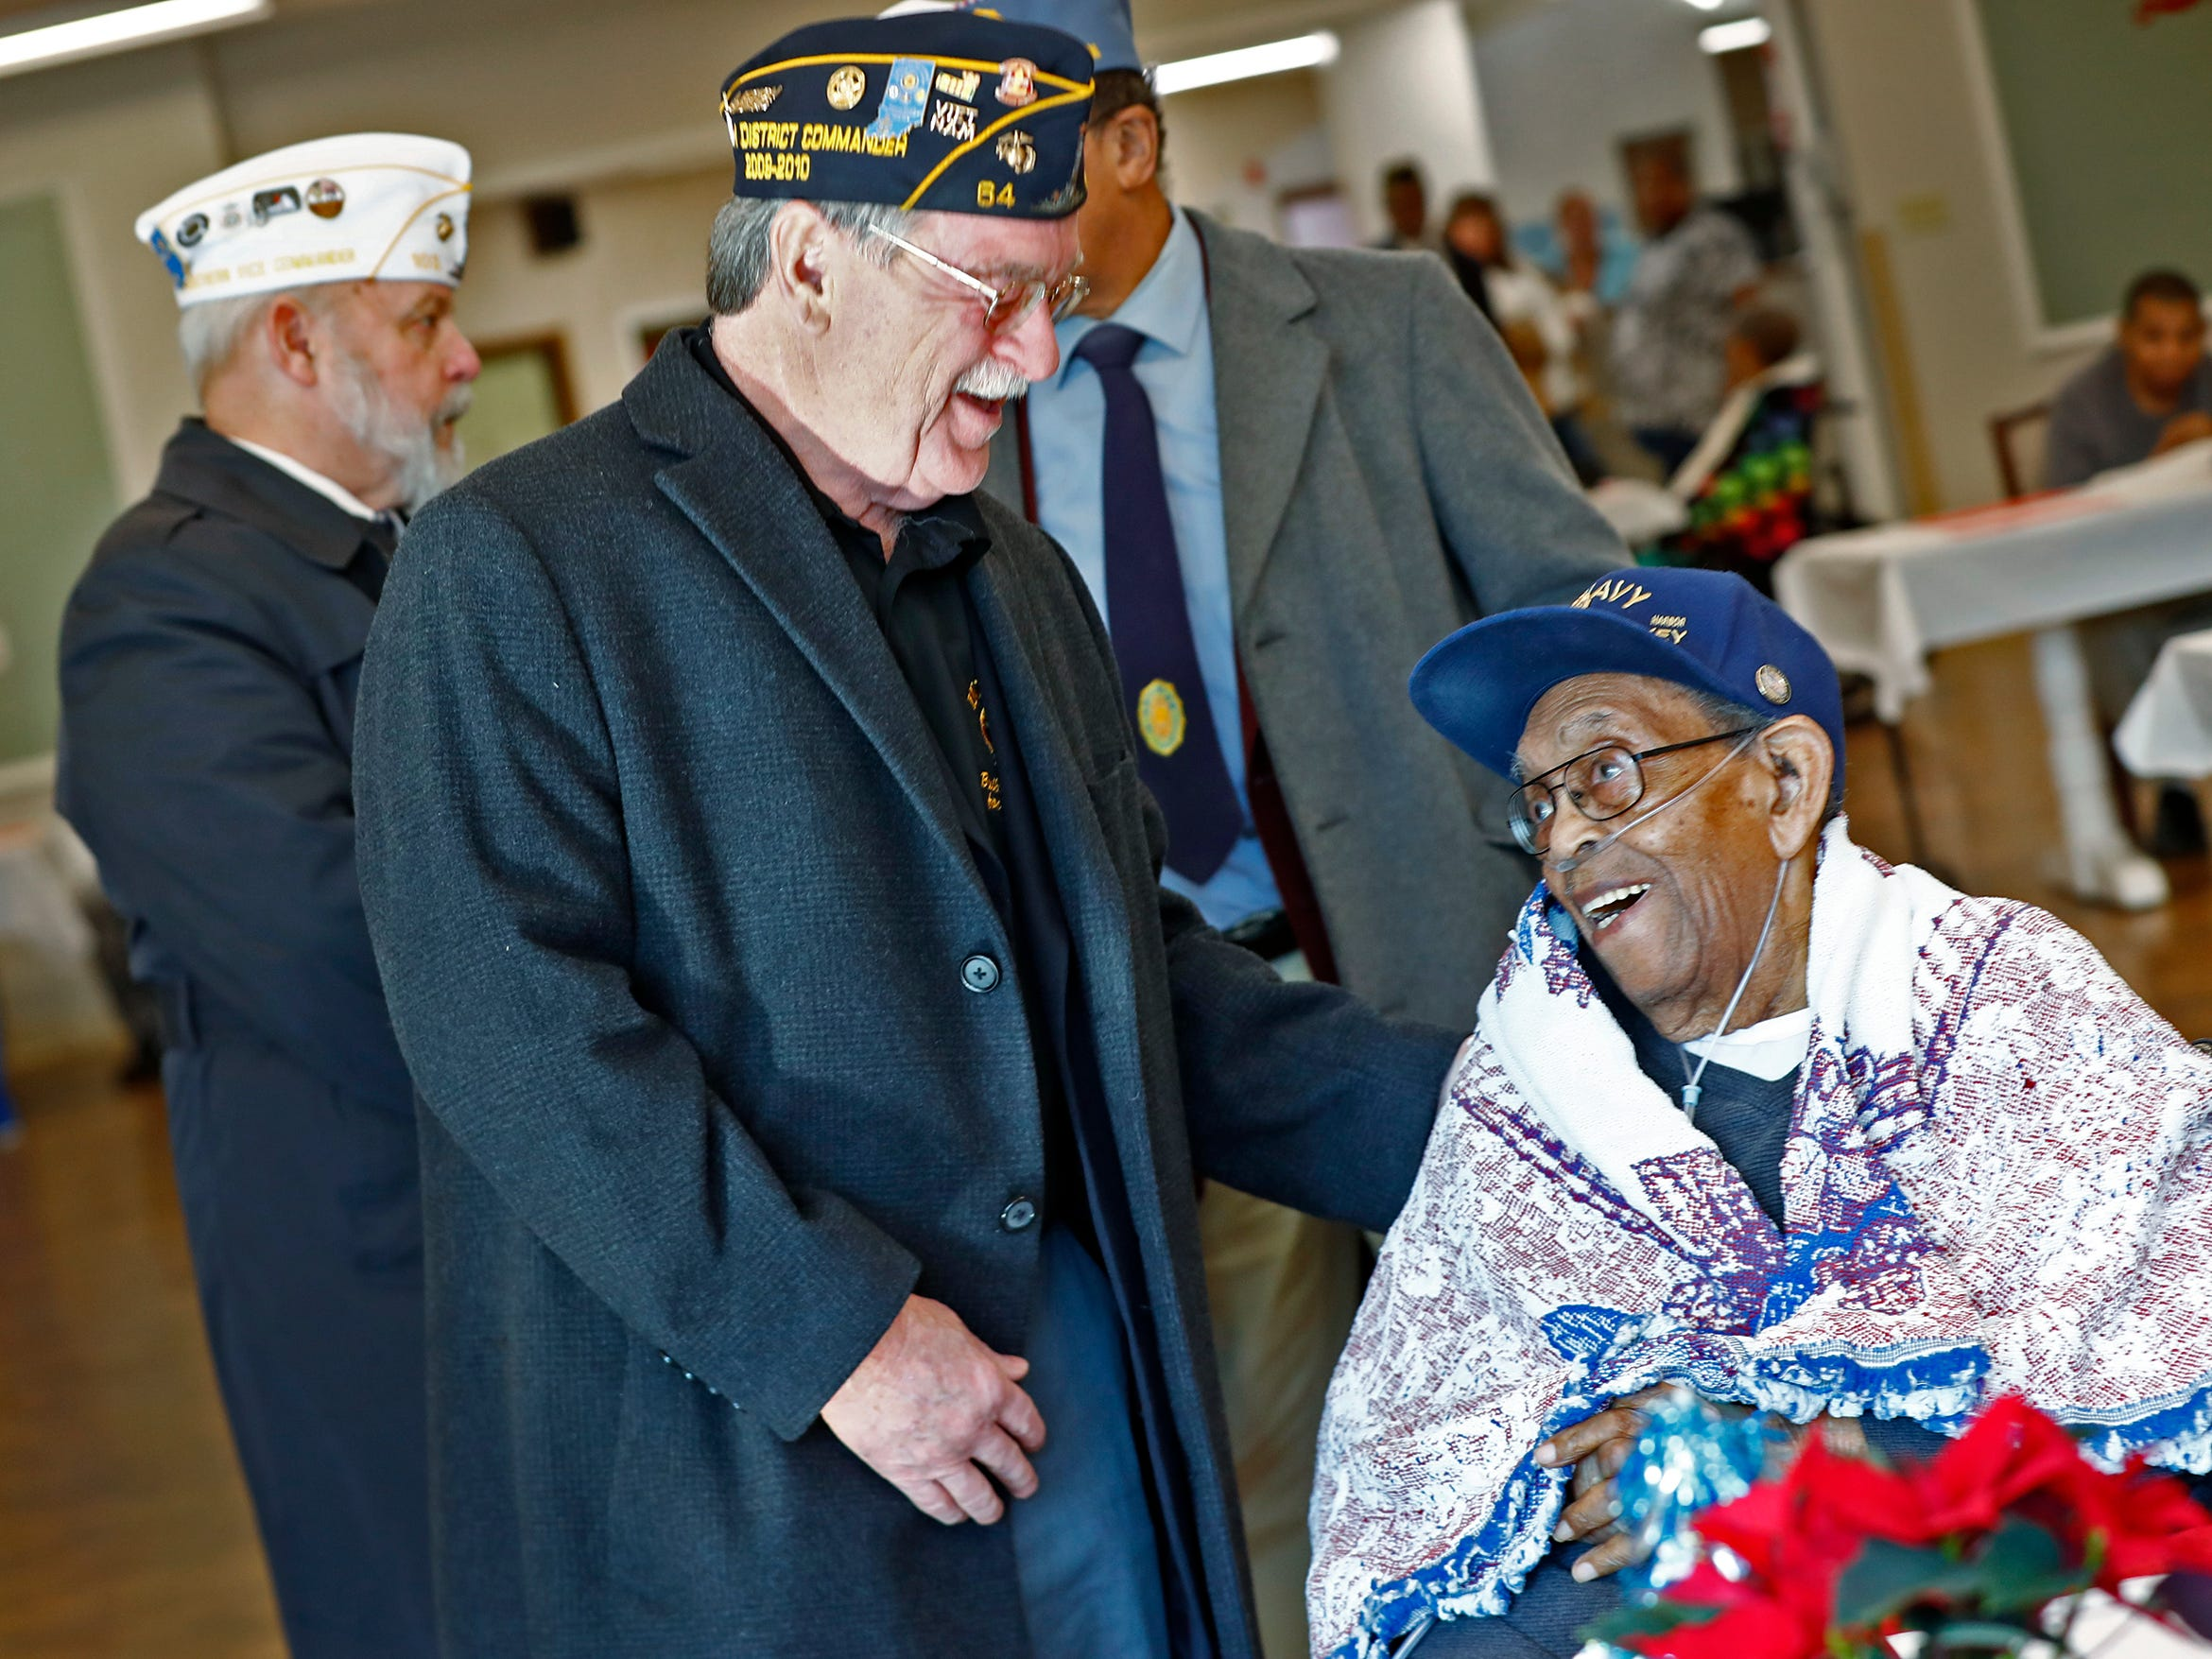 American Legion's Kenny Cooper, left, speaks with Pearl Harbor attack survivor William Harvey, right, at the Alpha Home where he lives, Friday, Dec. 7, 2018.  Harvey was unable to attend a Pearl Harbor Day Remembrance at Riverside High School, so several members with The American Legion came to visit him.  The former Heslar Naval Armory, now Riverside High School, used to host the event to remember those who died and to honor those who survived in the Dec. 7, 1941 Japanese attack on Pearl Harbor which plunged the United States into World War II.  This year, the event was brought back.  There was also a 21-gun salute, taps played, and a wreath tossing ceremony on the banks of the White River adjacent to the school.